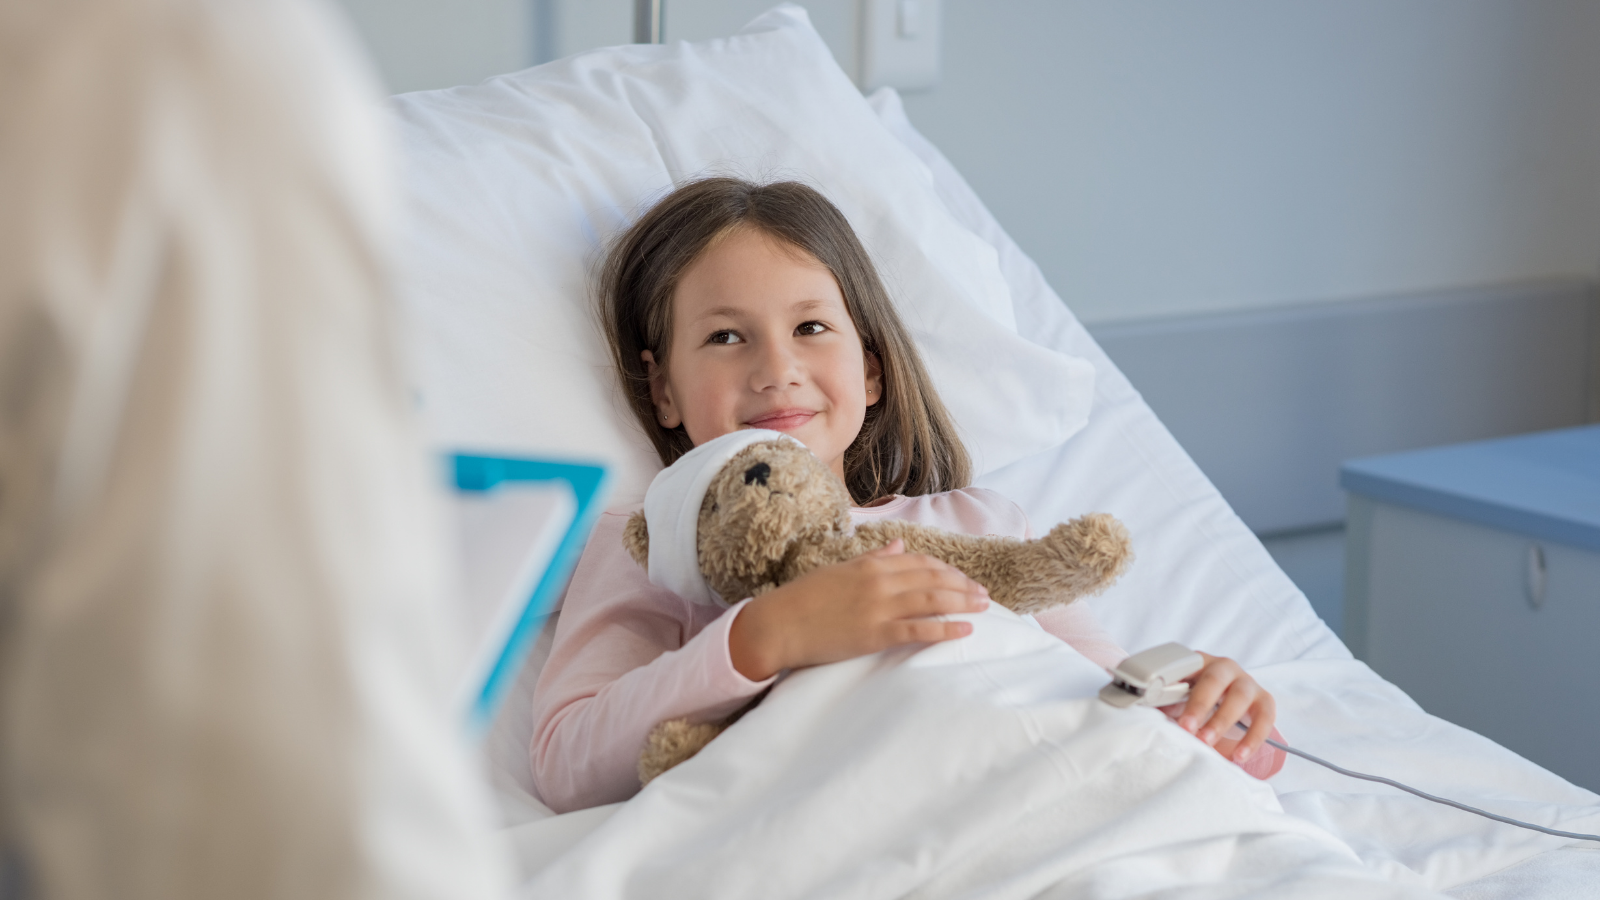 Child in hospital bed holding a teddy bear